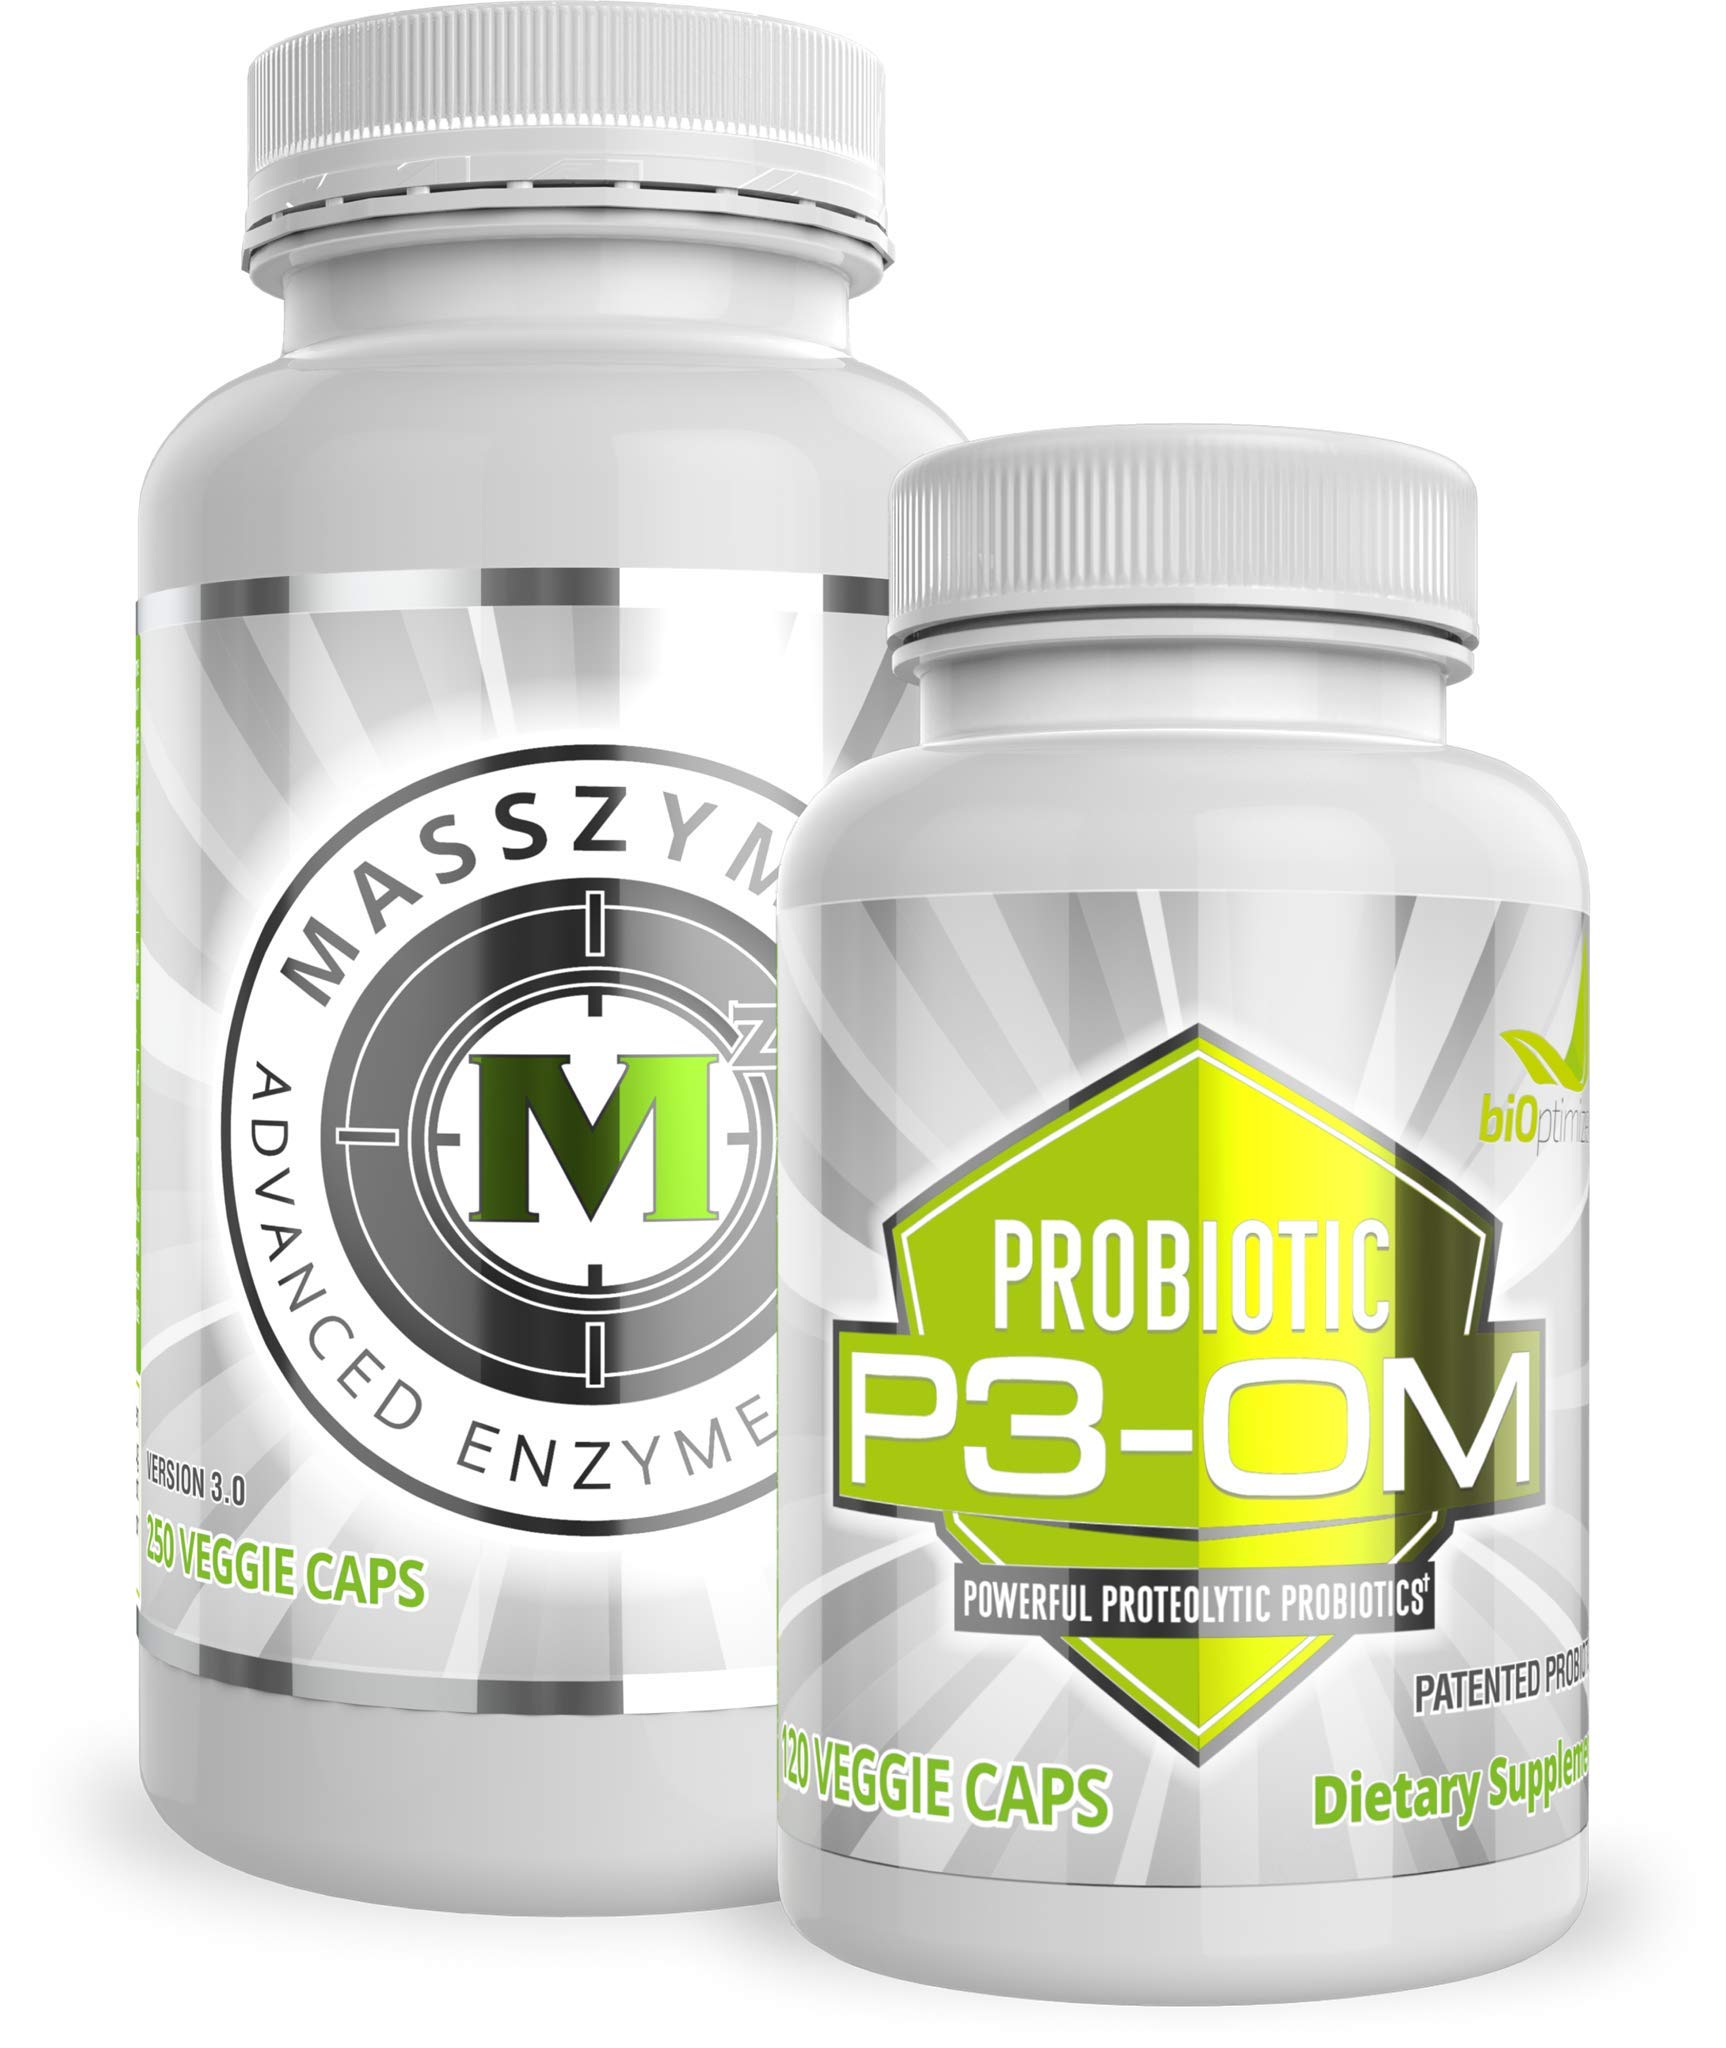 BiOptimizers - P3-OM and MassZymes Bundle - Premium Digestive Enzymes and Best Probiotics for Women and Men - Doctor-Formulated (250 MassZymes Capsules, 120 P3-OM Capsules)